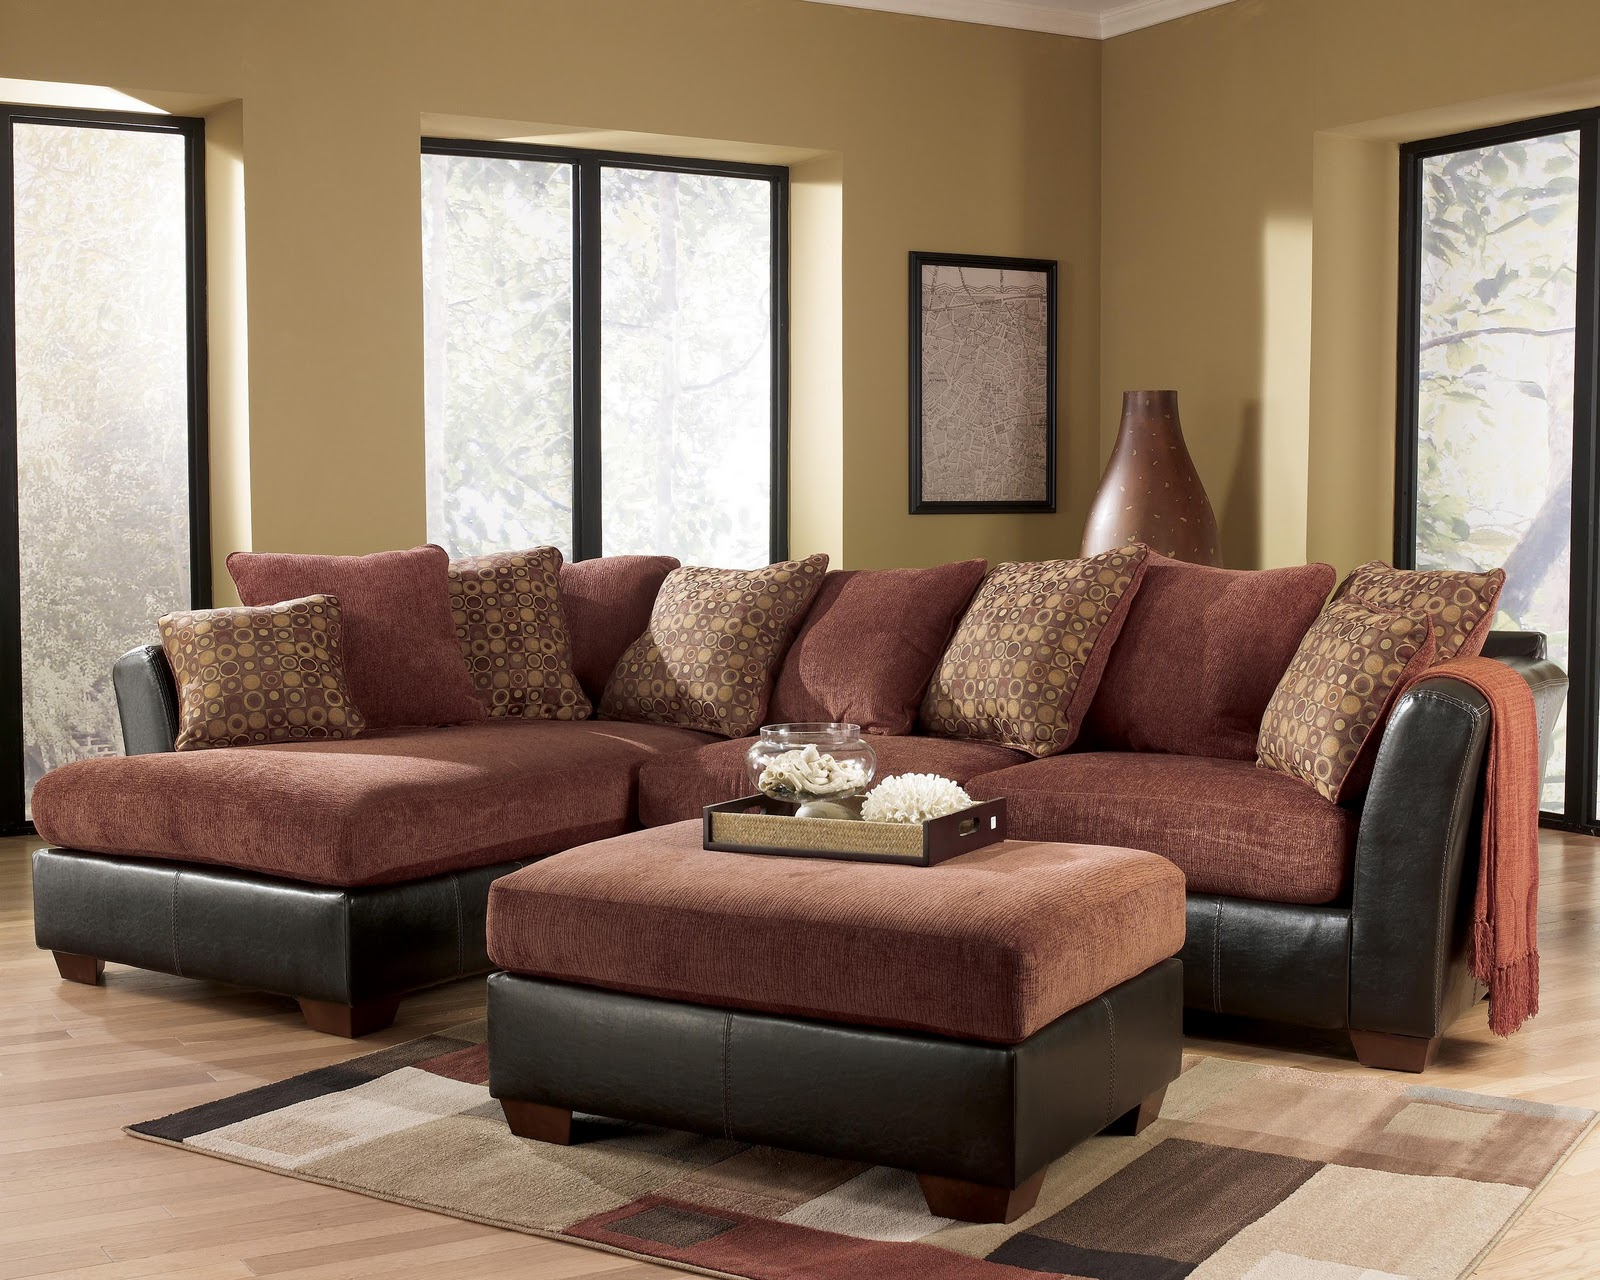 Ashley furniture larson 31400 cinnamon sofa sectional for Family room with sectional sofa